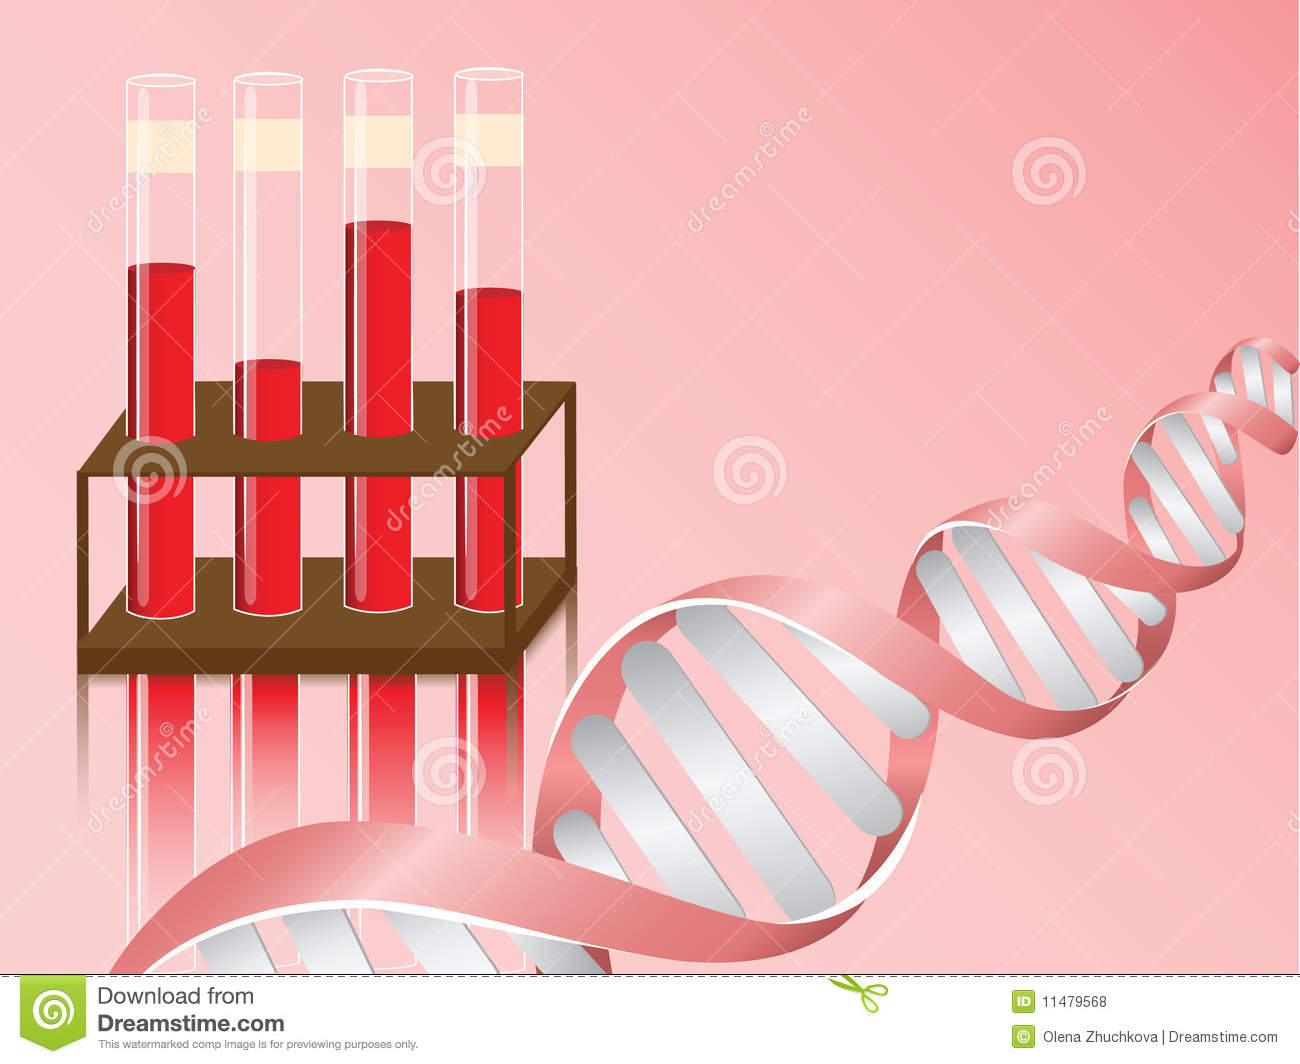 ... 99 DNA Testing Company 23andMe | Fast Company | Business + Innovation